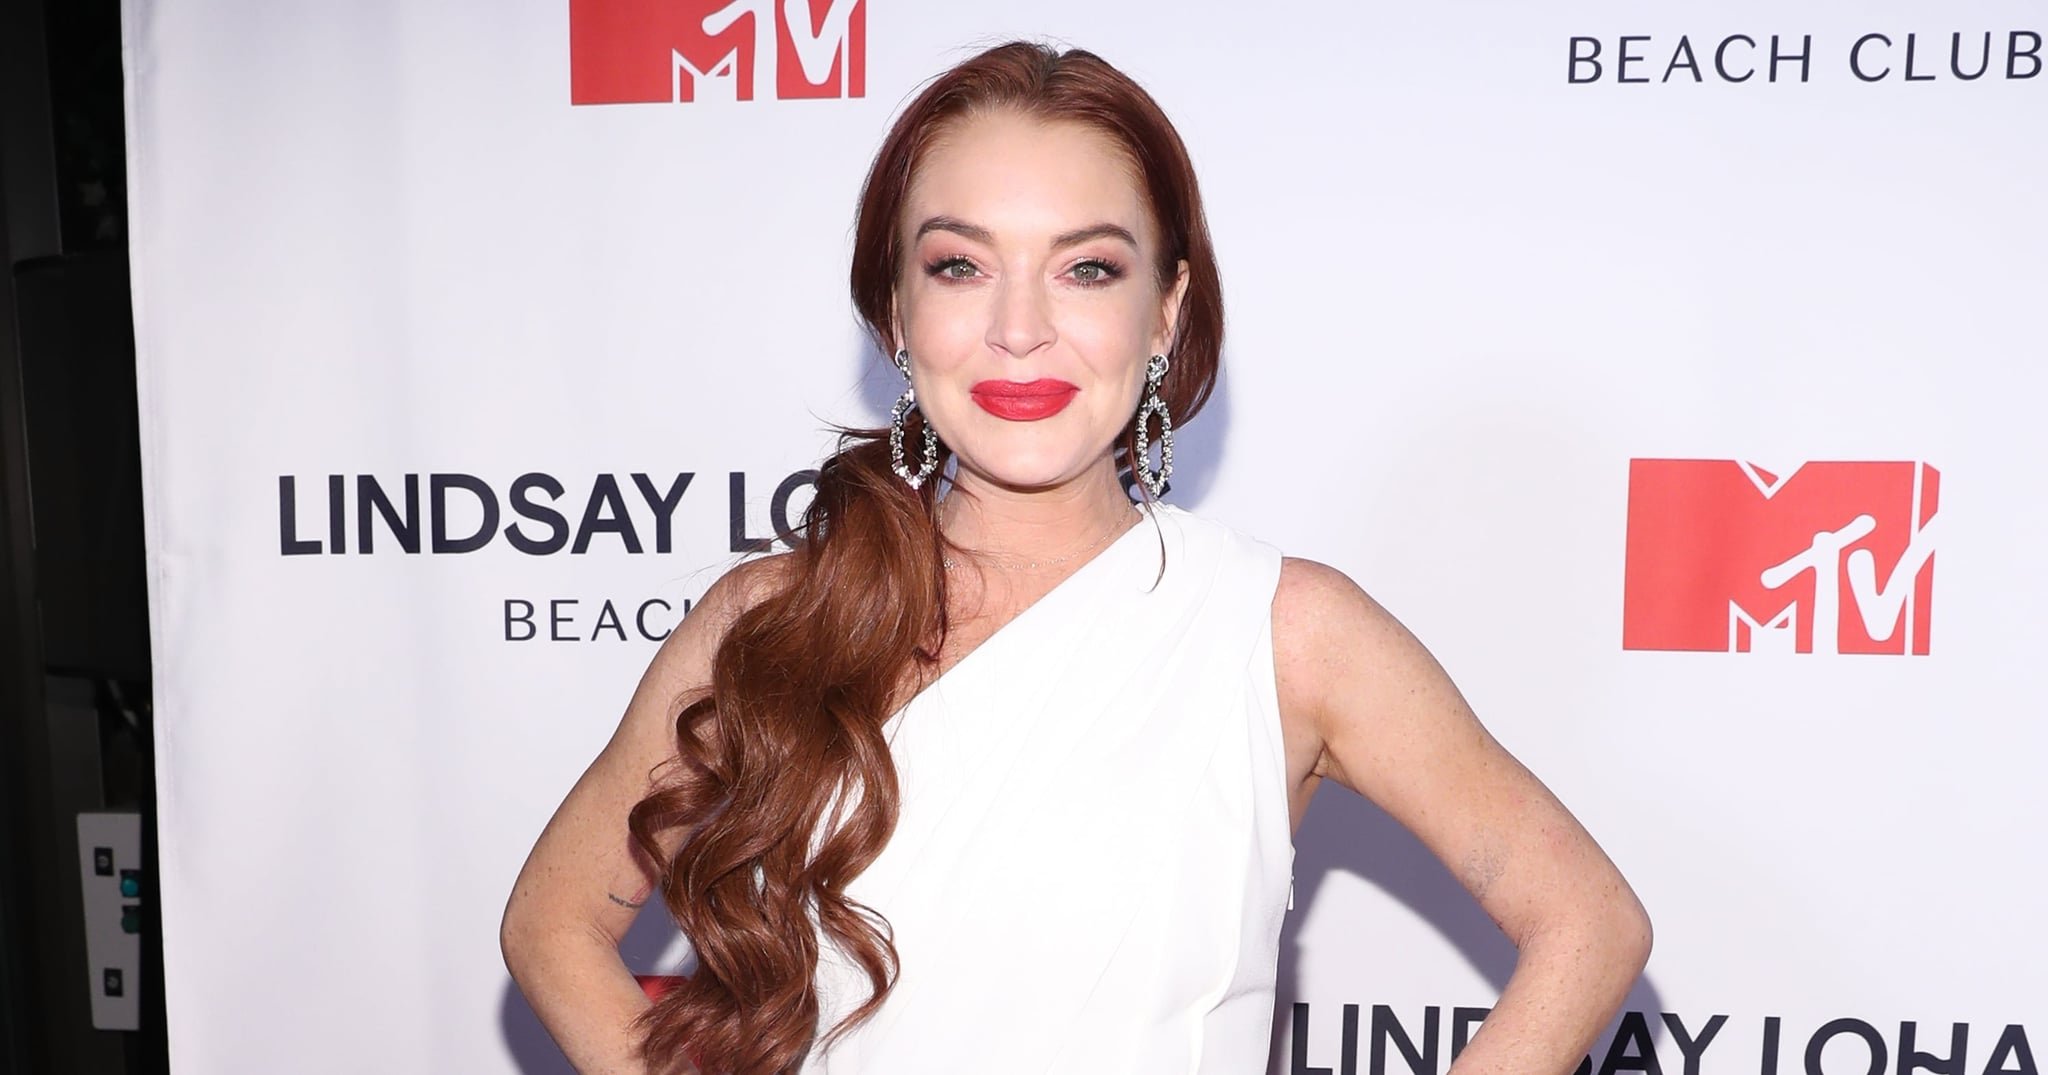 Lindsay Lohan Confirms Her Breakup With Unnamed Ex-Boyfriend